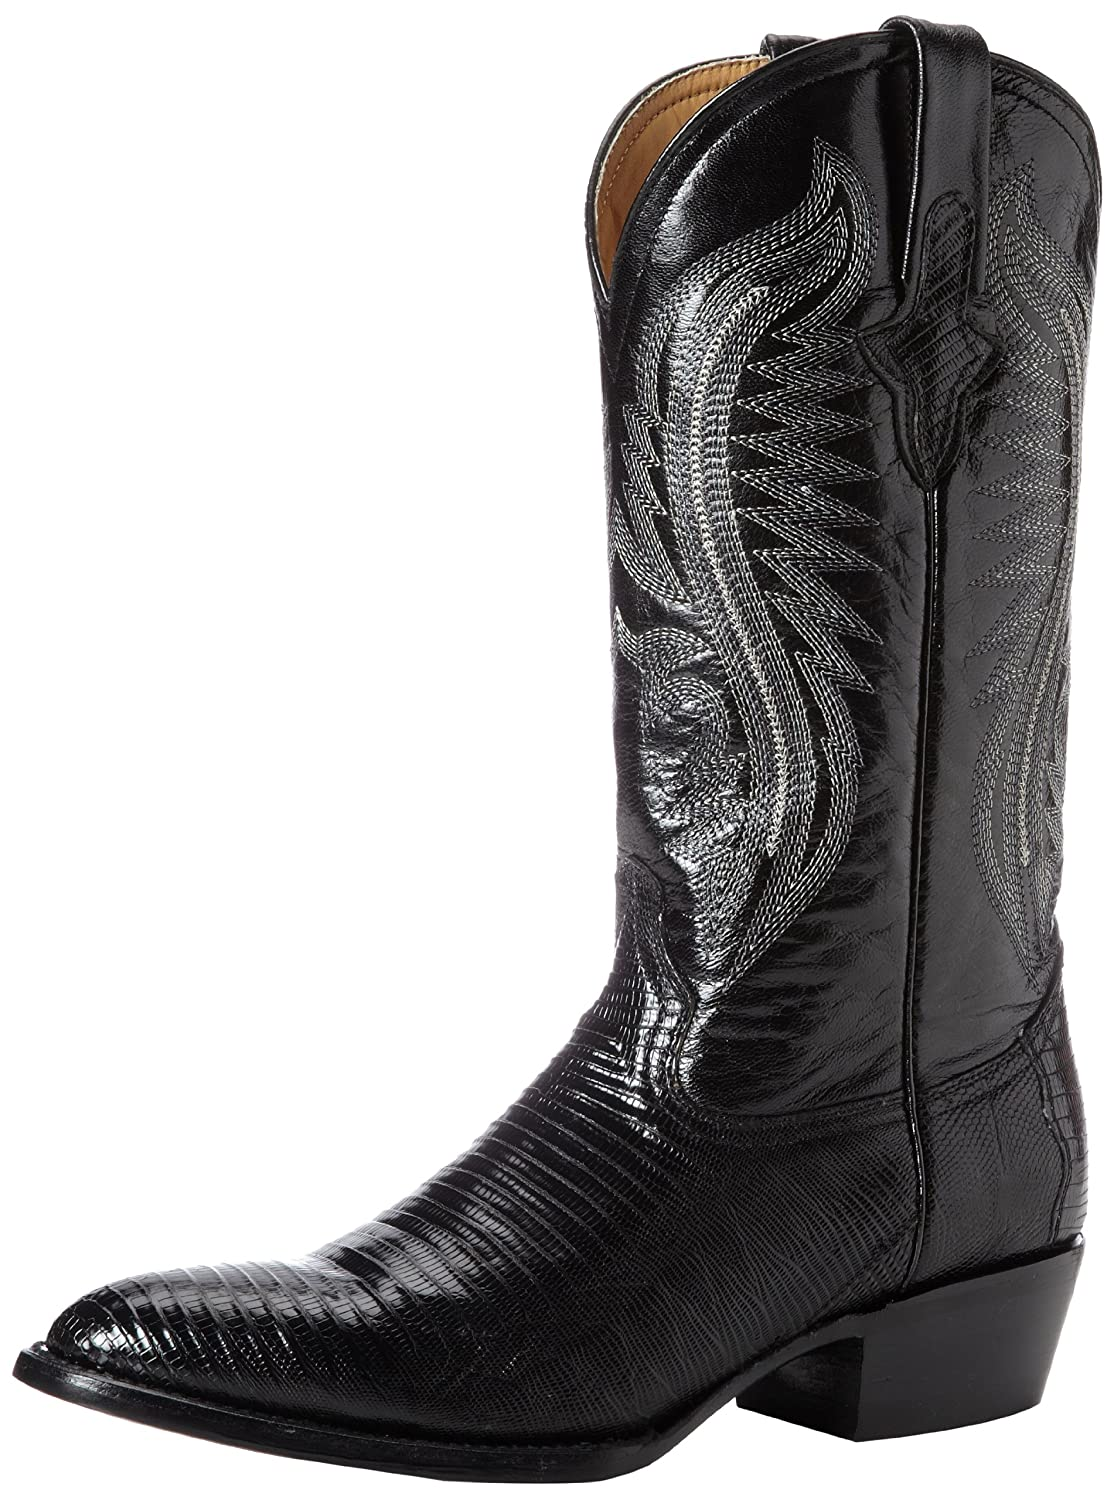 Ferrini Men's Genuine Lizard R-Toe Western Boot B00B9I2ETW 10 D(M) US|Black